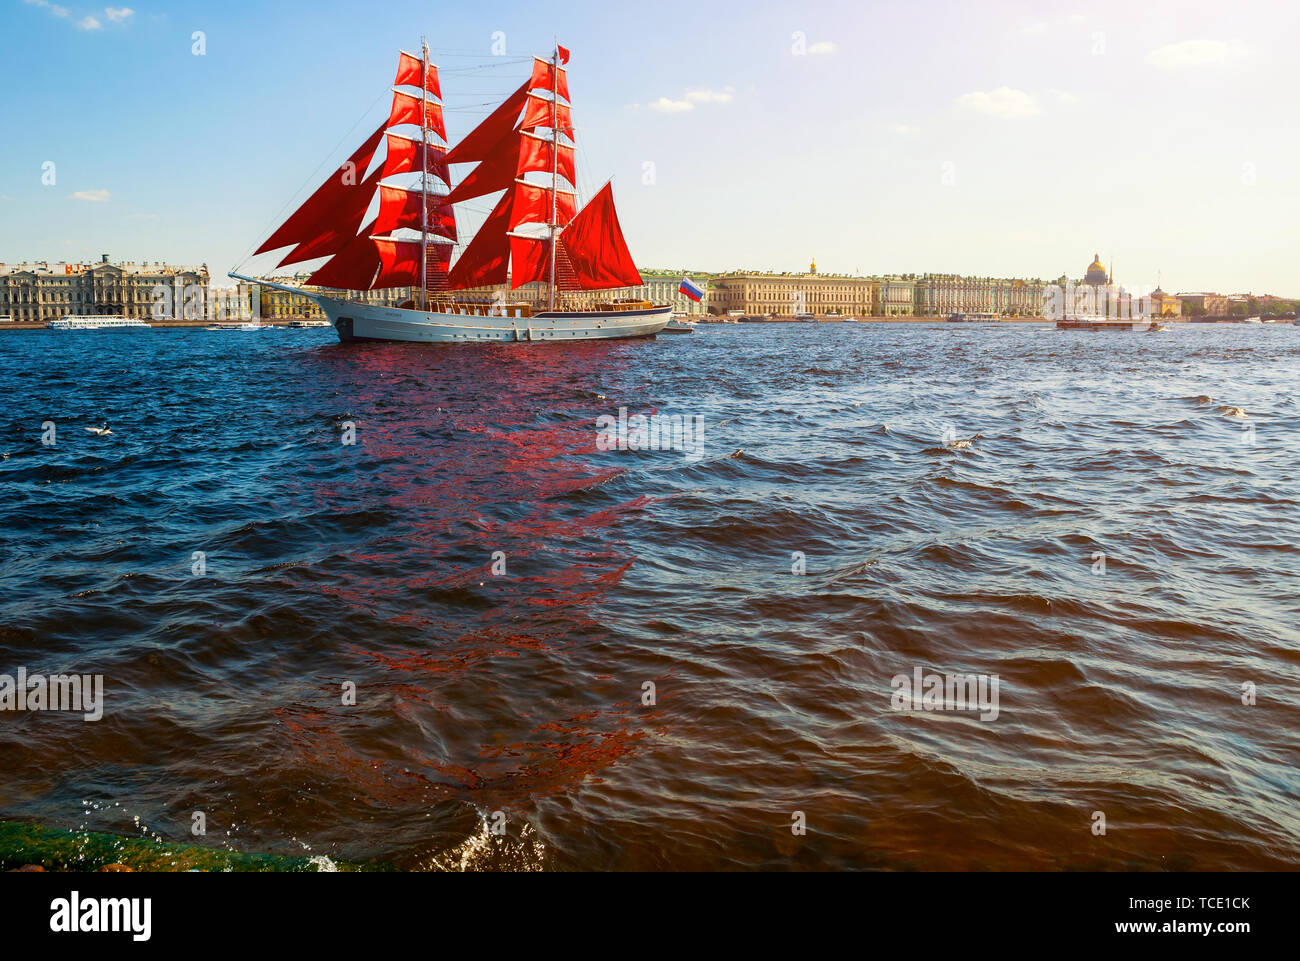 St Petersburg, Russia - June 6, 2019. Swedish brig Tre Kronor with Scarlet sails on the Neva river. Scarlet Sails is the Russian holiday of school gra Stock Photo